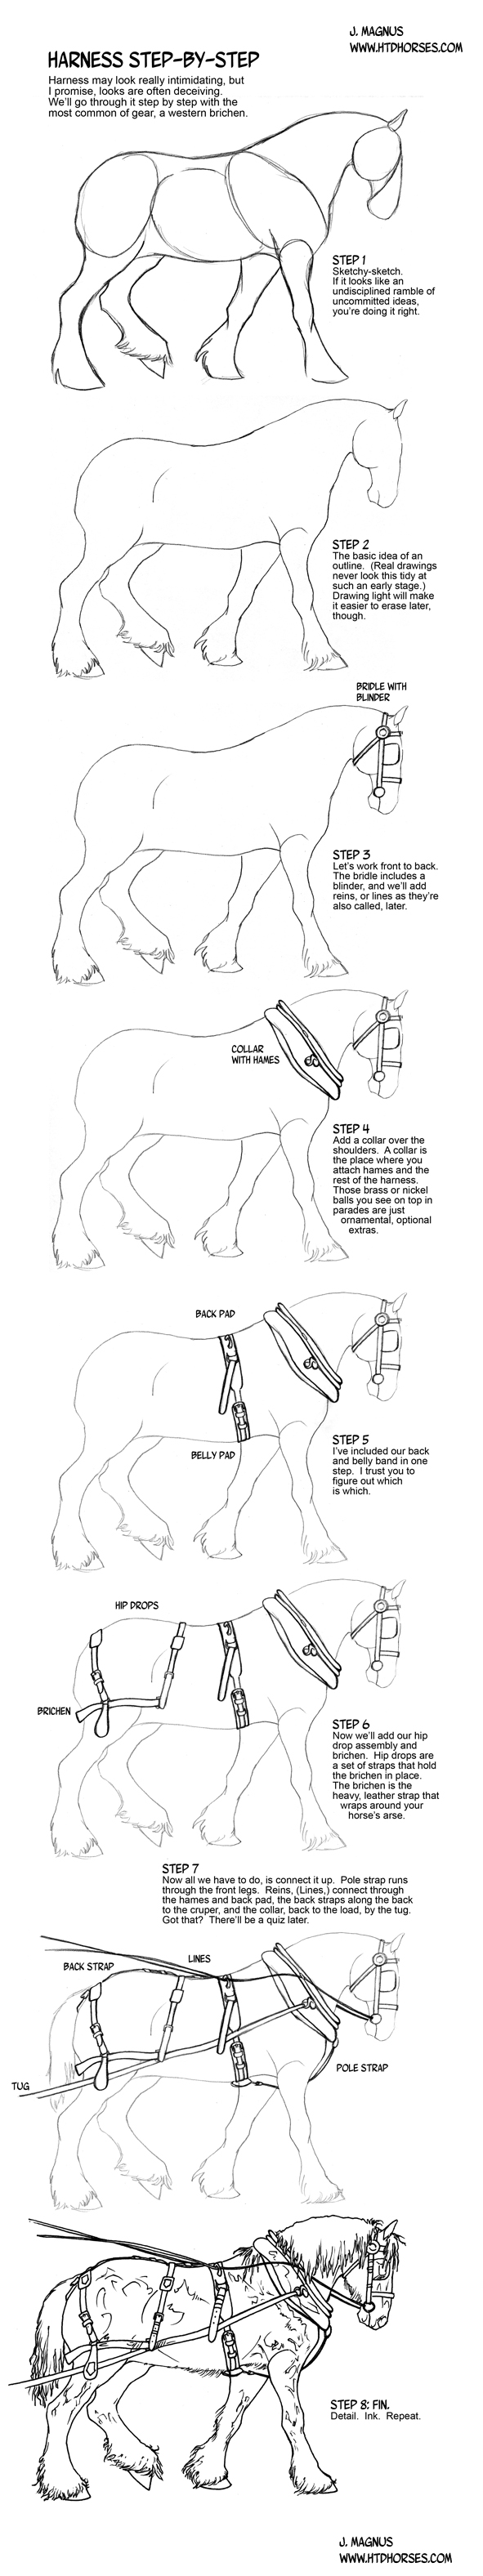 How To Draw A Horse In Harness By Sketcherjak